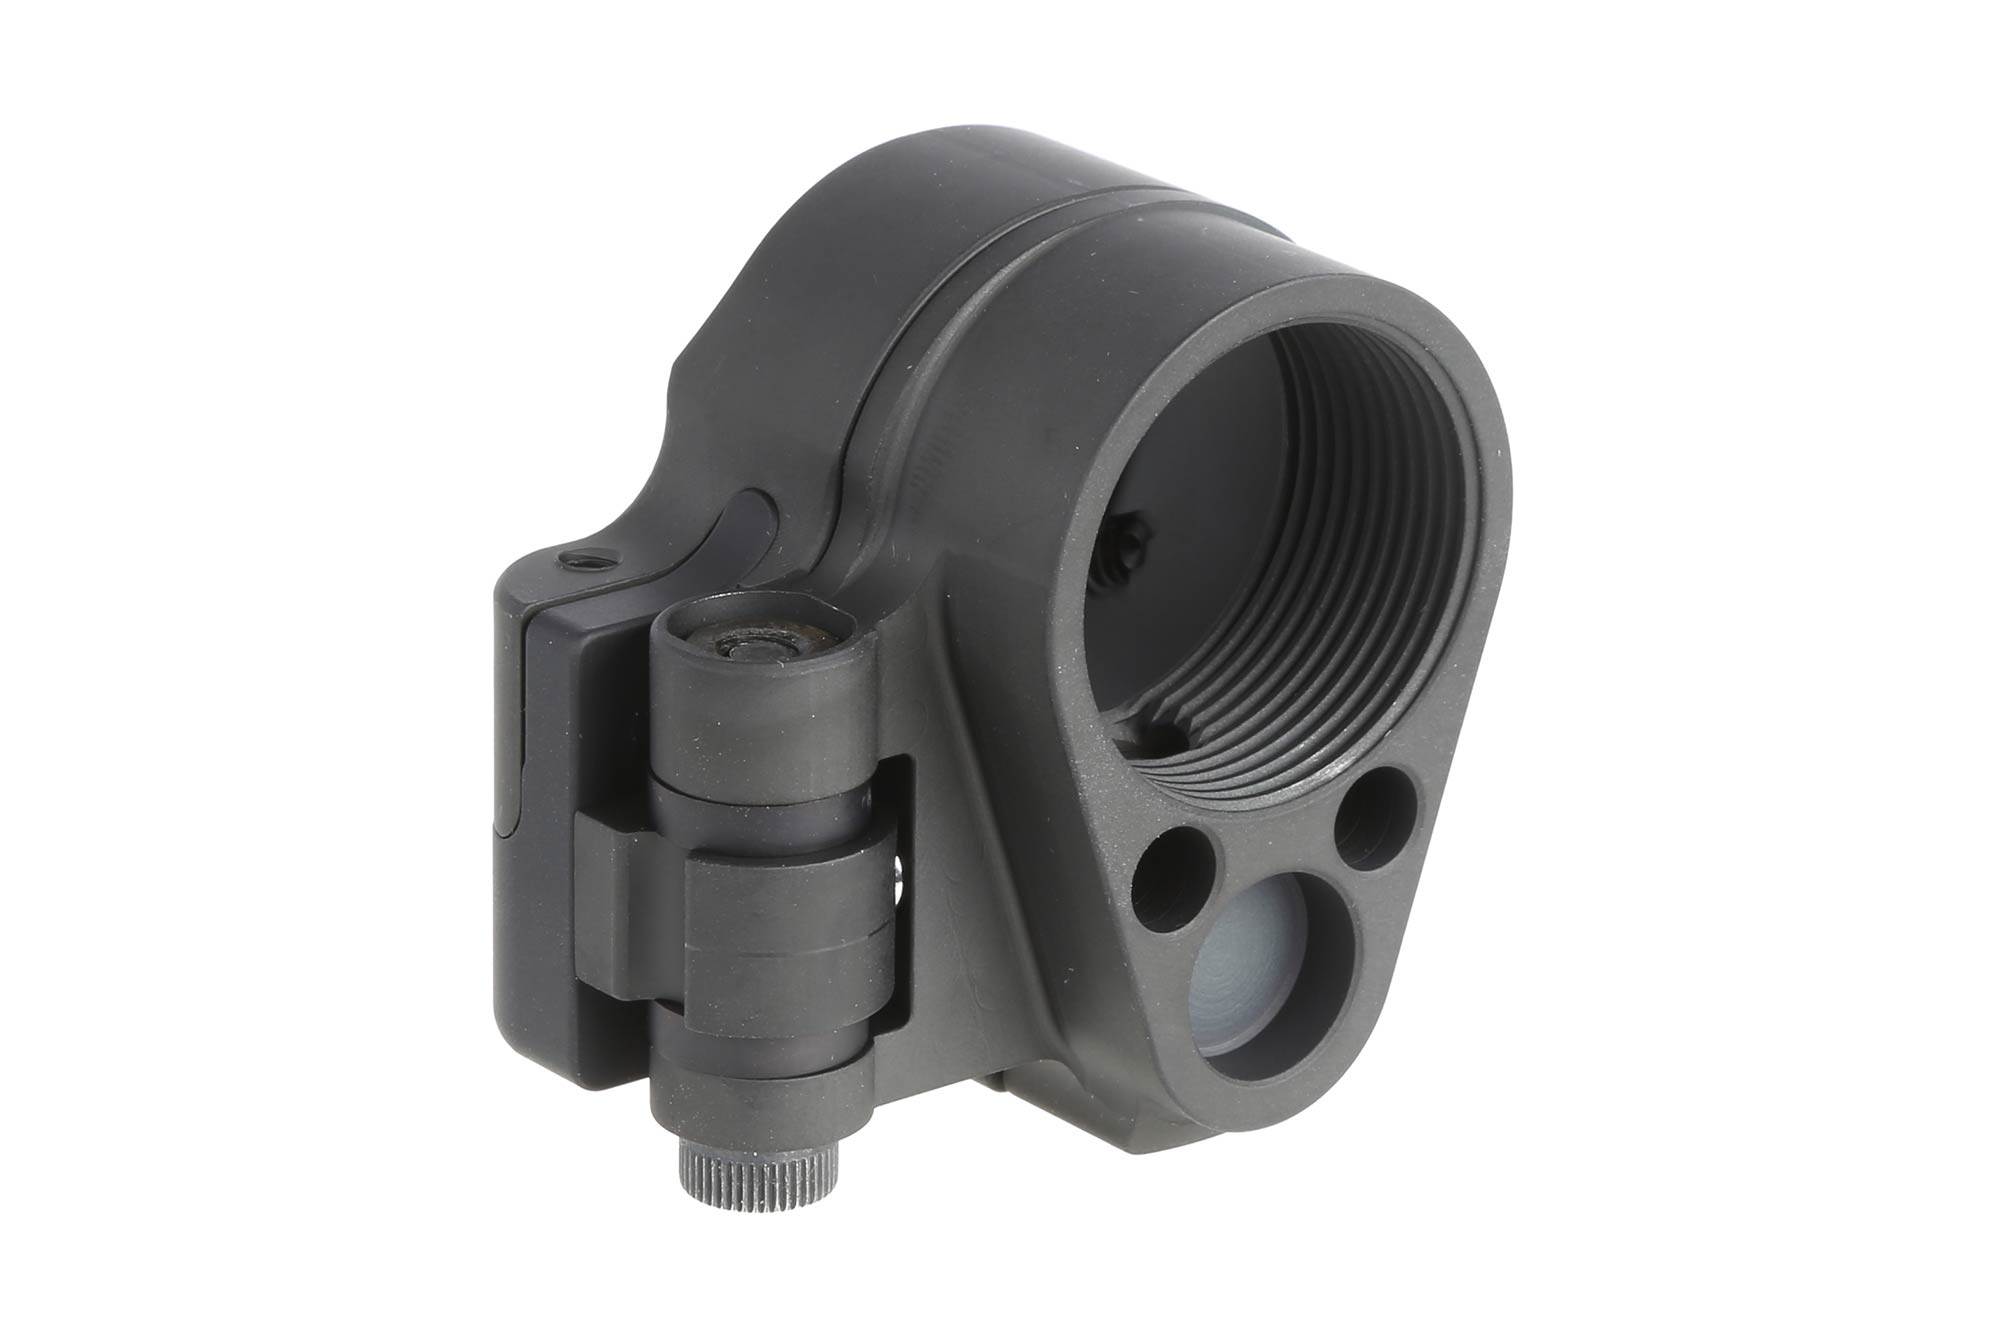 The Law Tactical AR Folding Stock Adapter Gen 3-M for ar15 and ar308 in the folded position adds to your length of pull